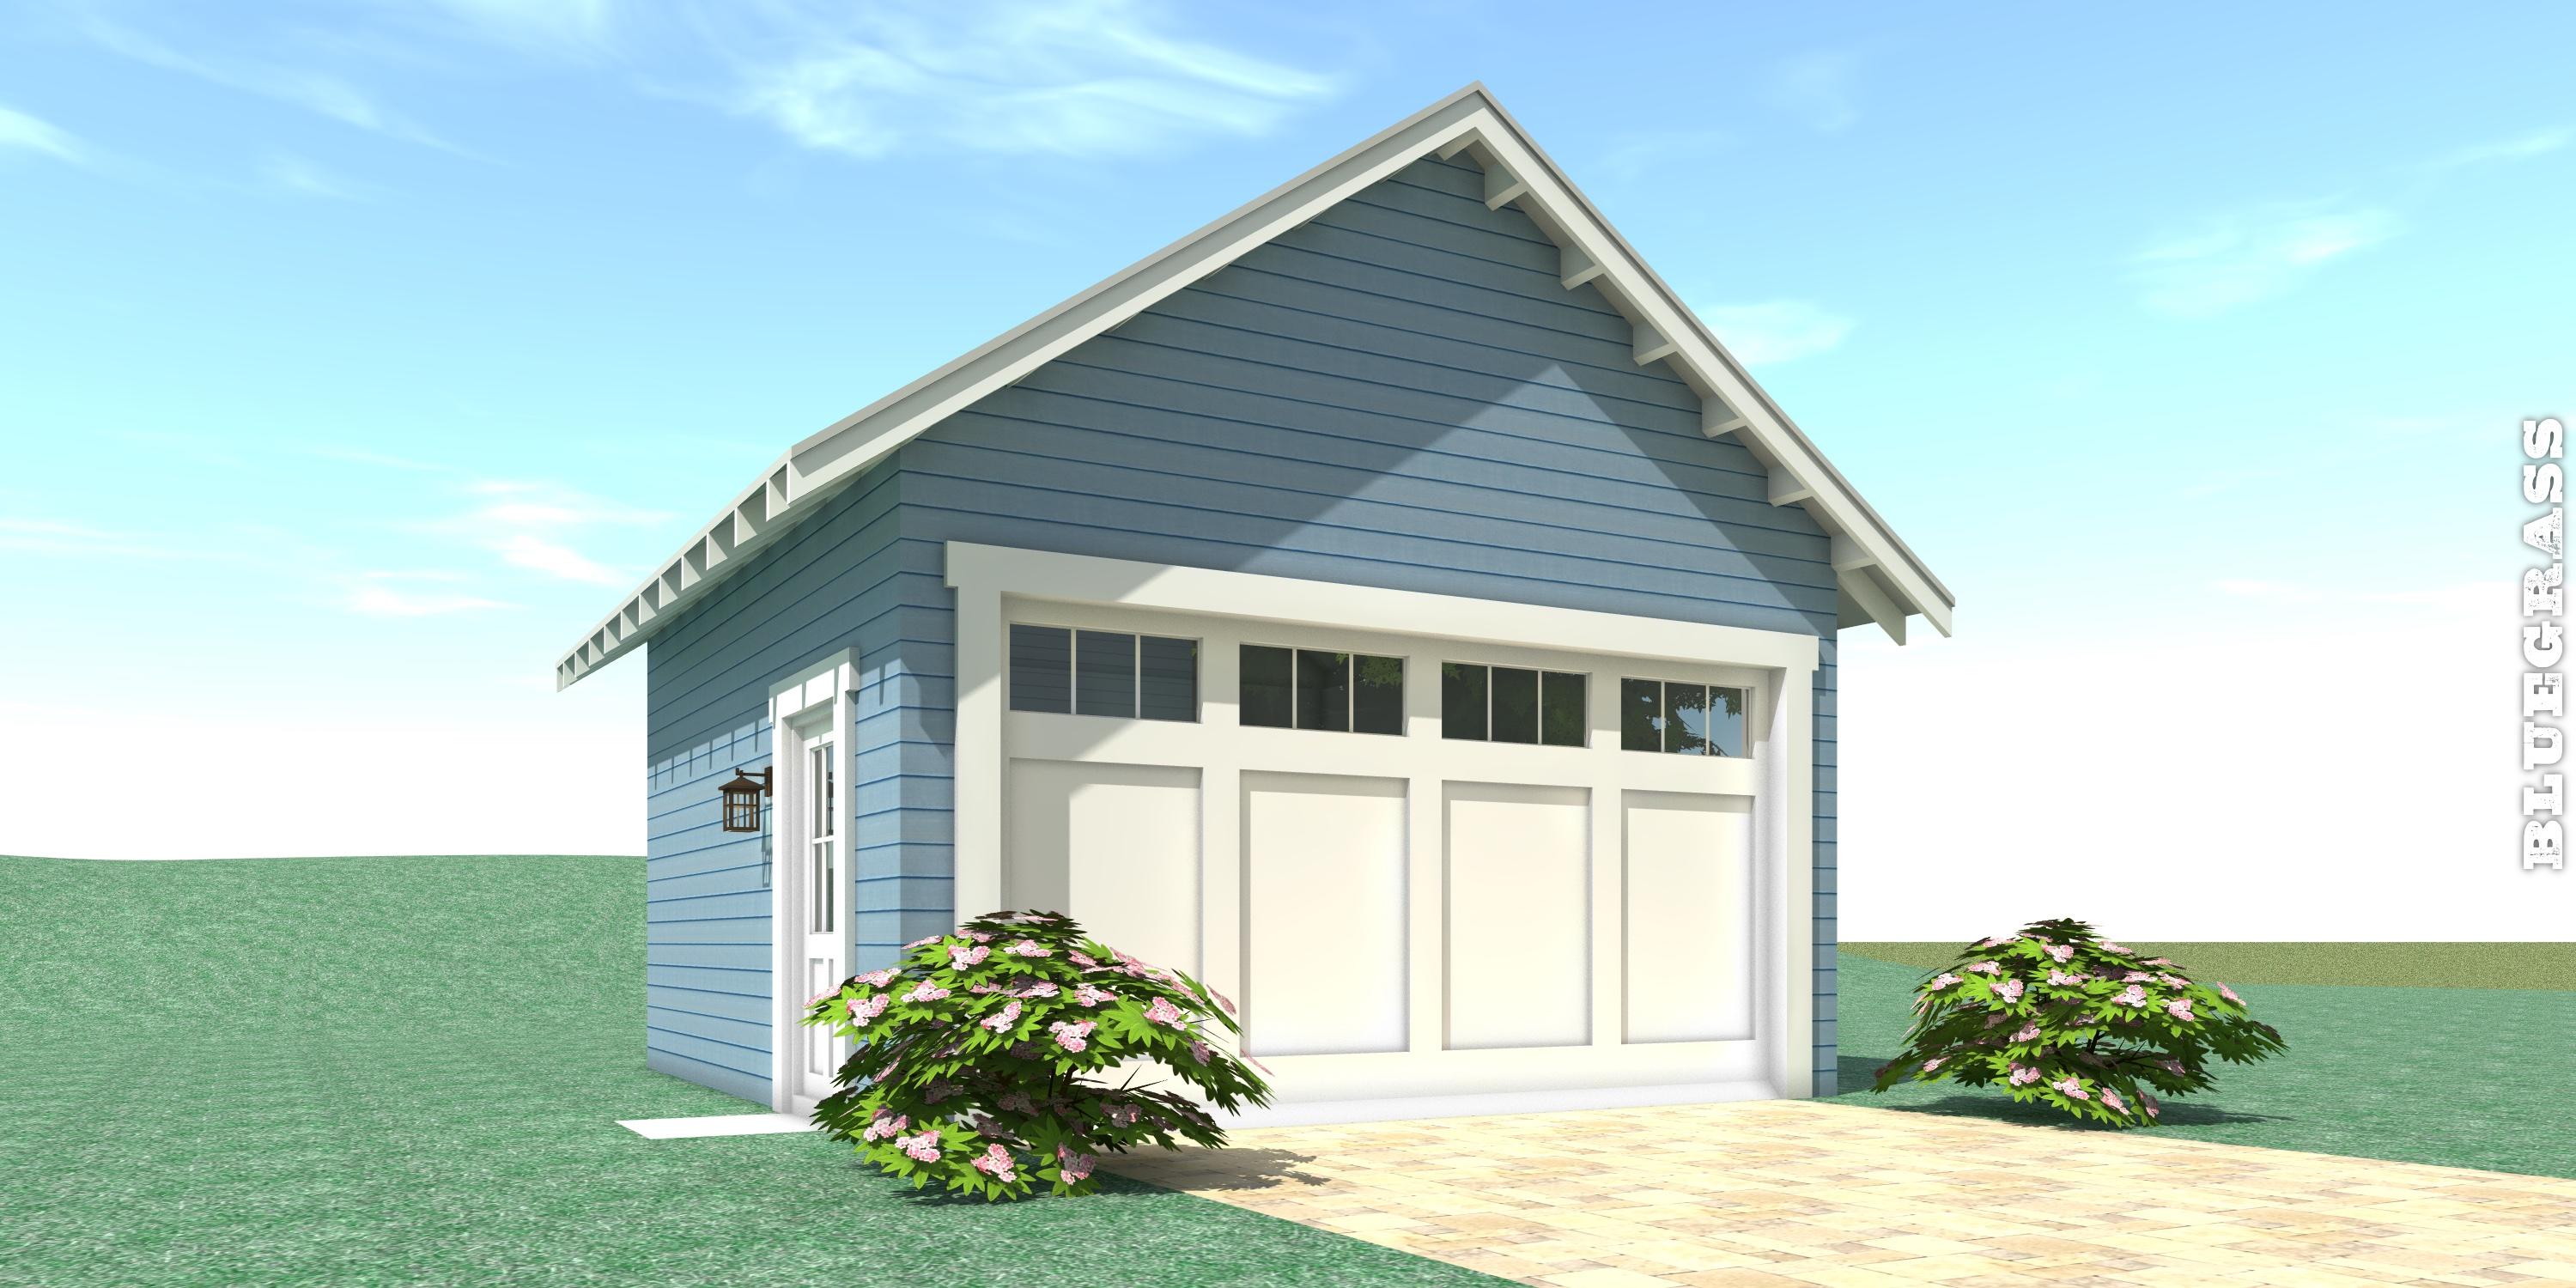 Bluegrass Garage Builders Garage Design Ideas